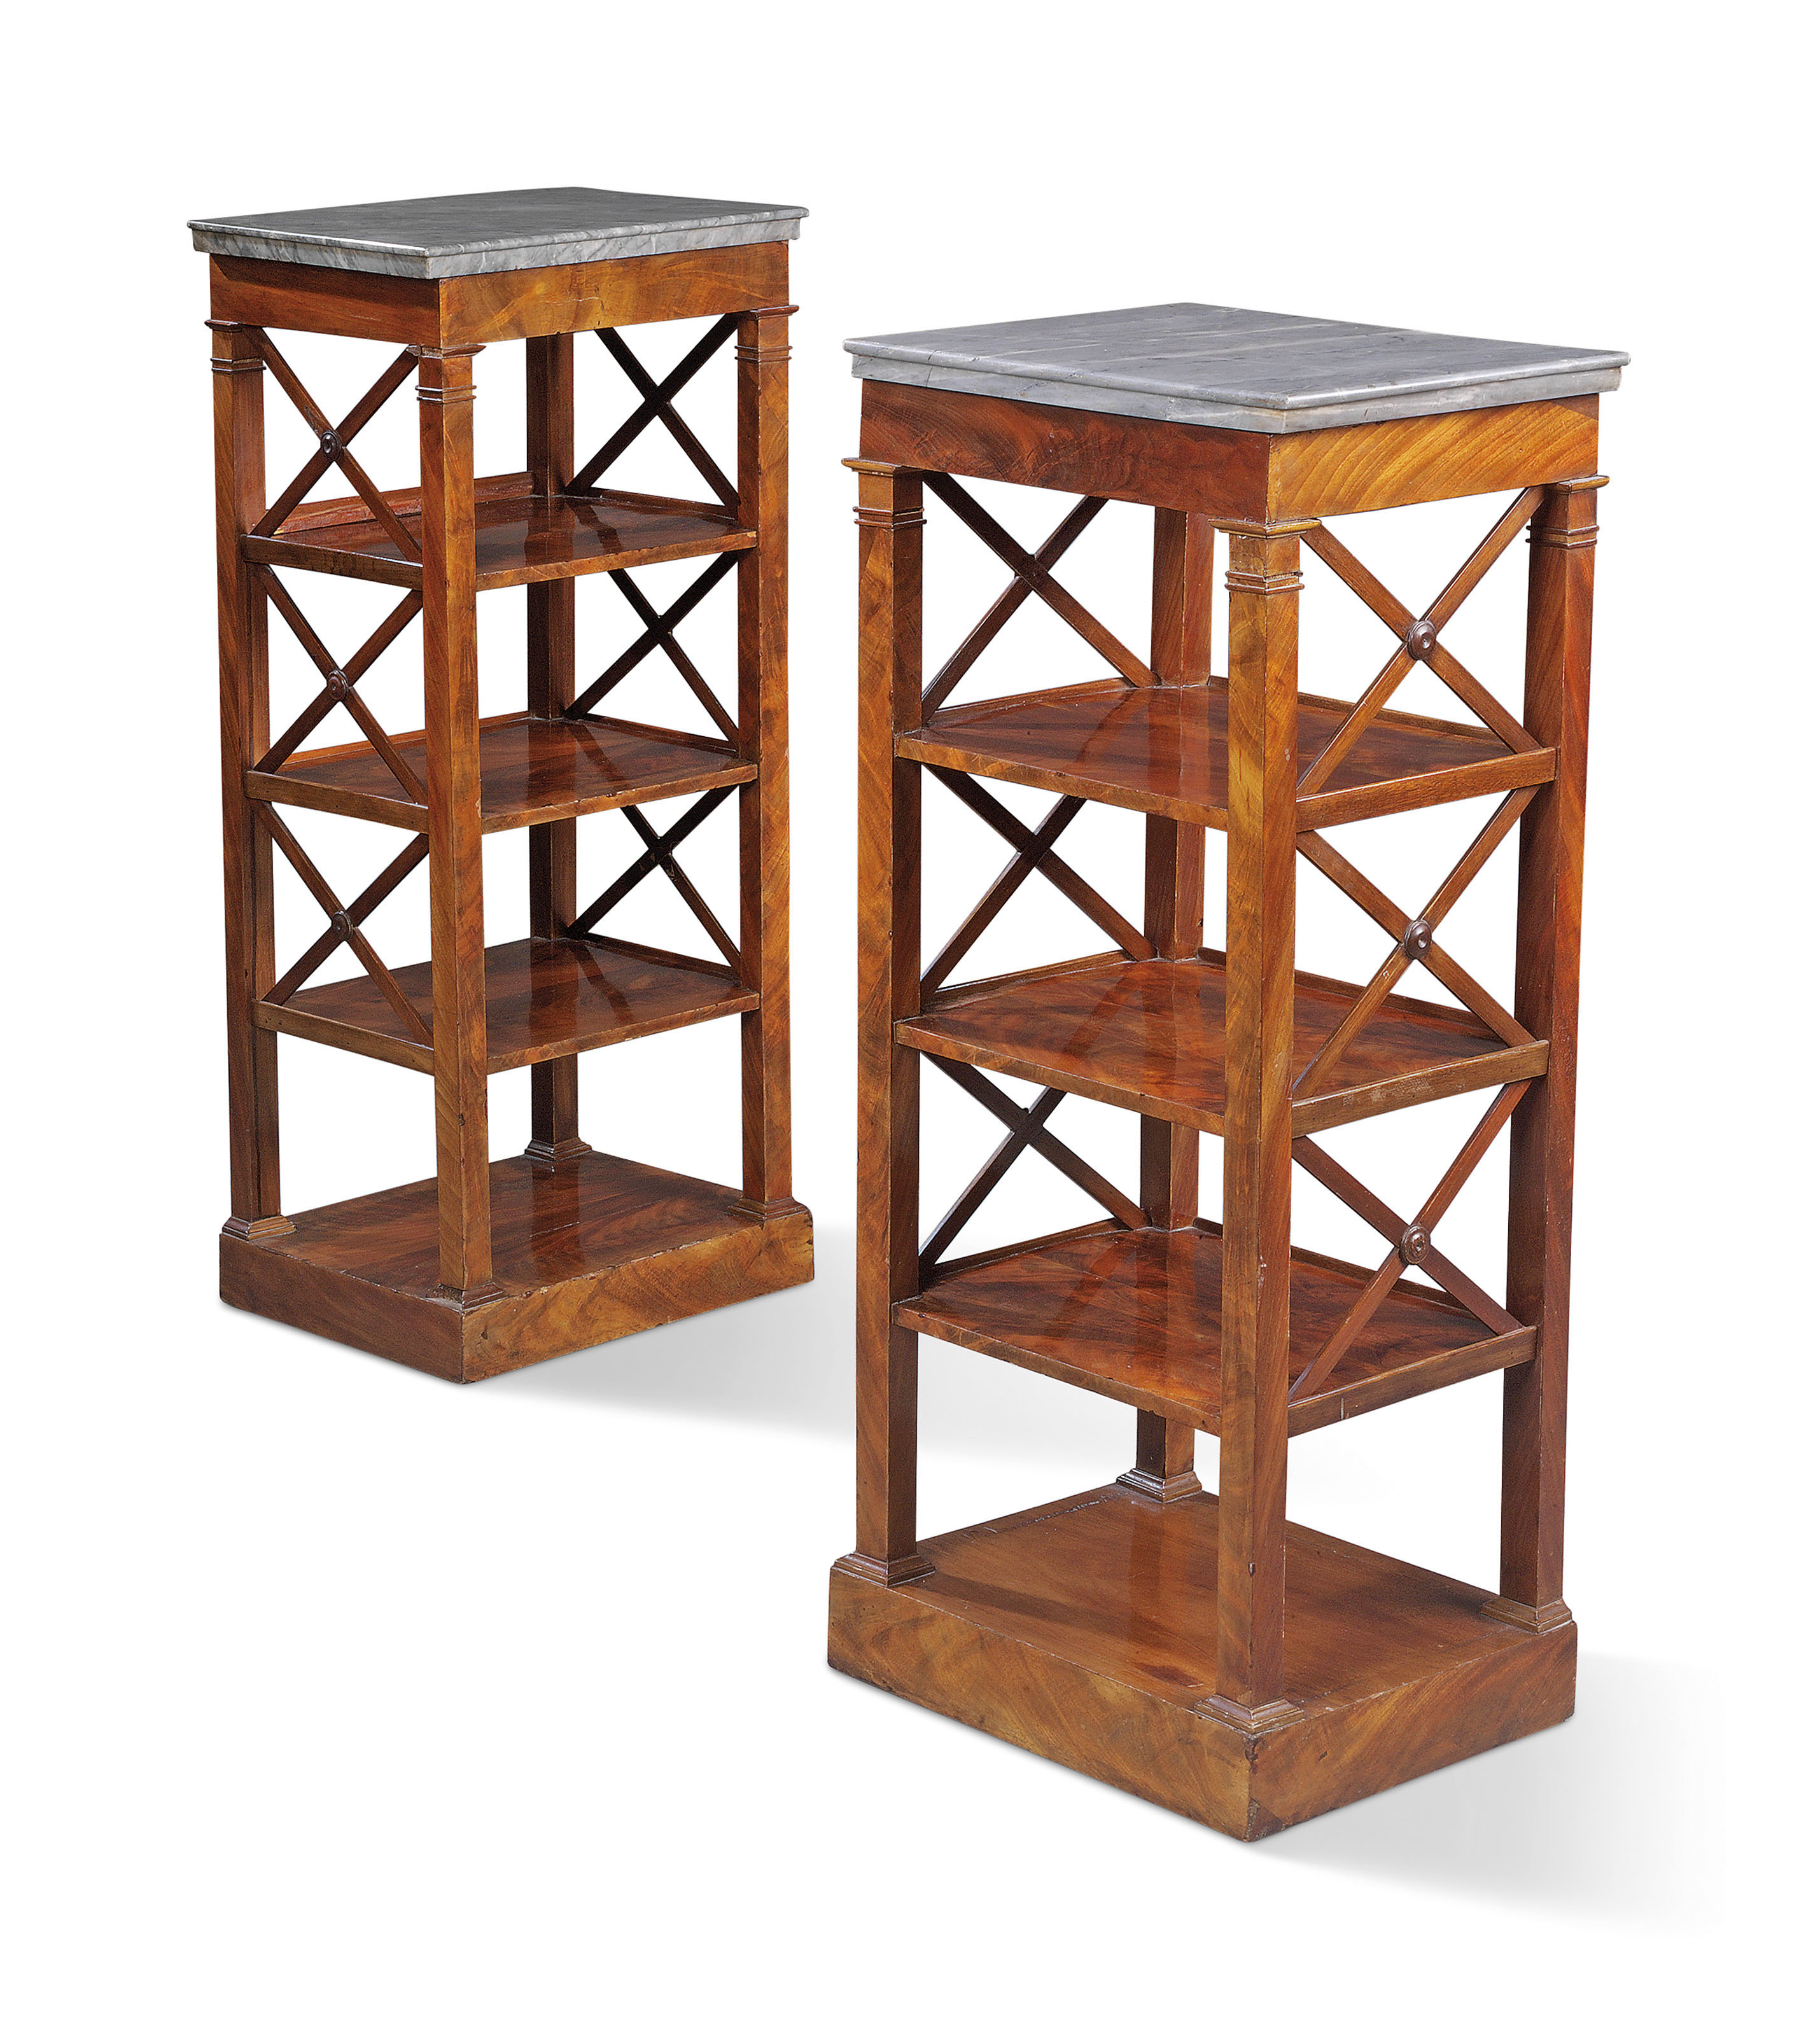 Louis Philippe Open Bookcase: A PAIR OF OF LOUIS-PHILIPPE MAHOGANY OPEN BOOKCASES OR